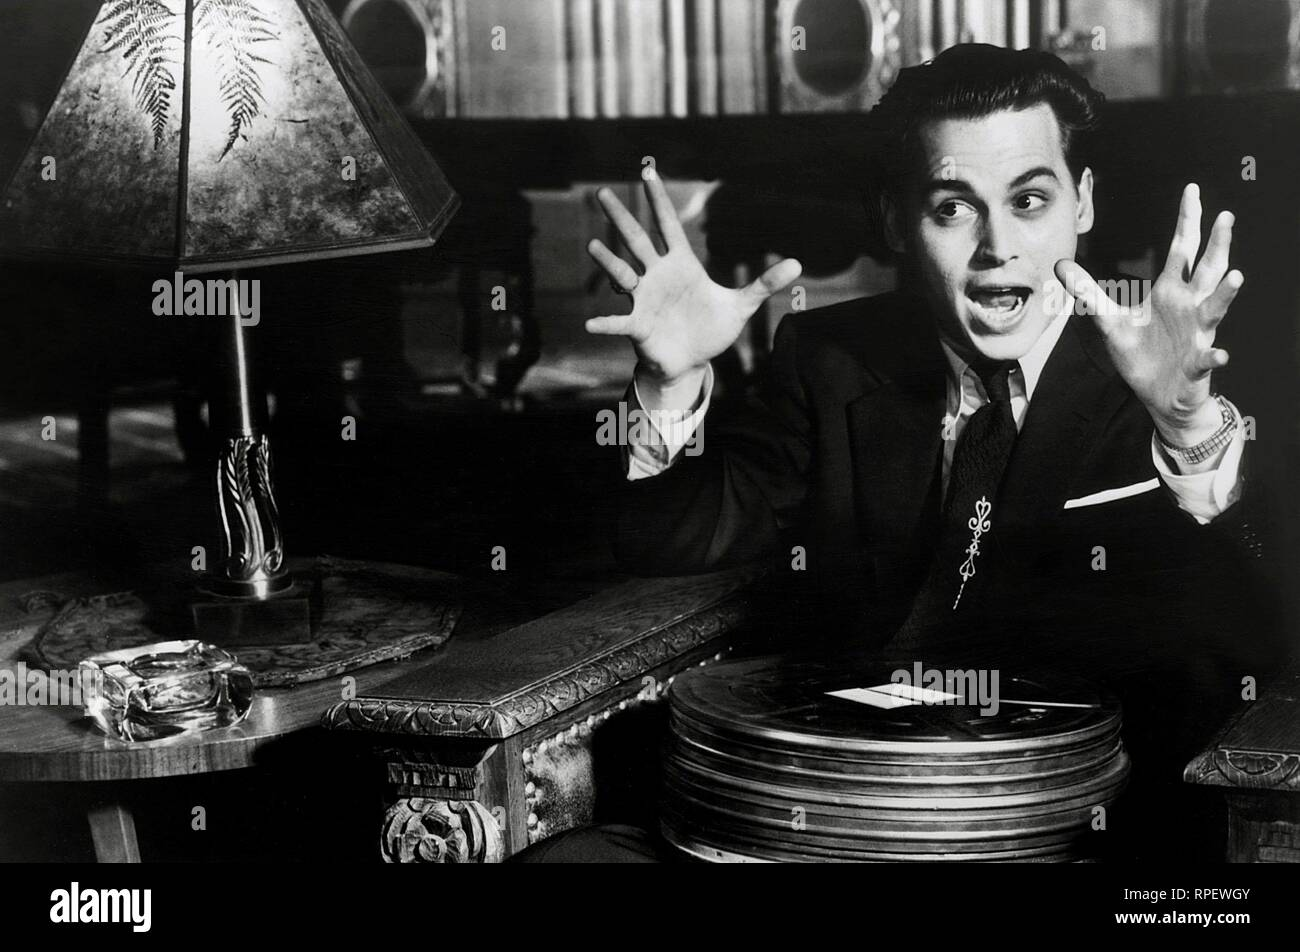 JOHNNY DEPP, ED WOOD, 1994 - Stock Image